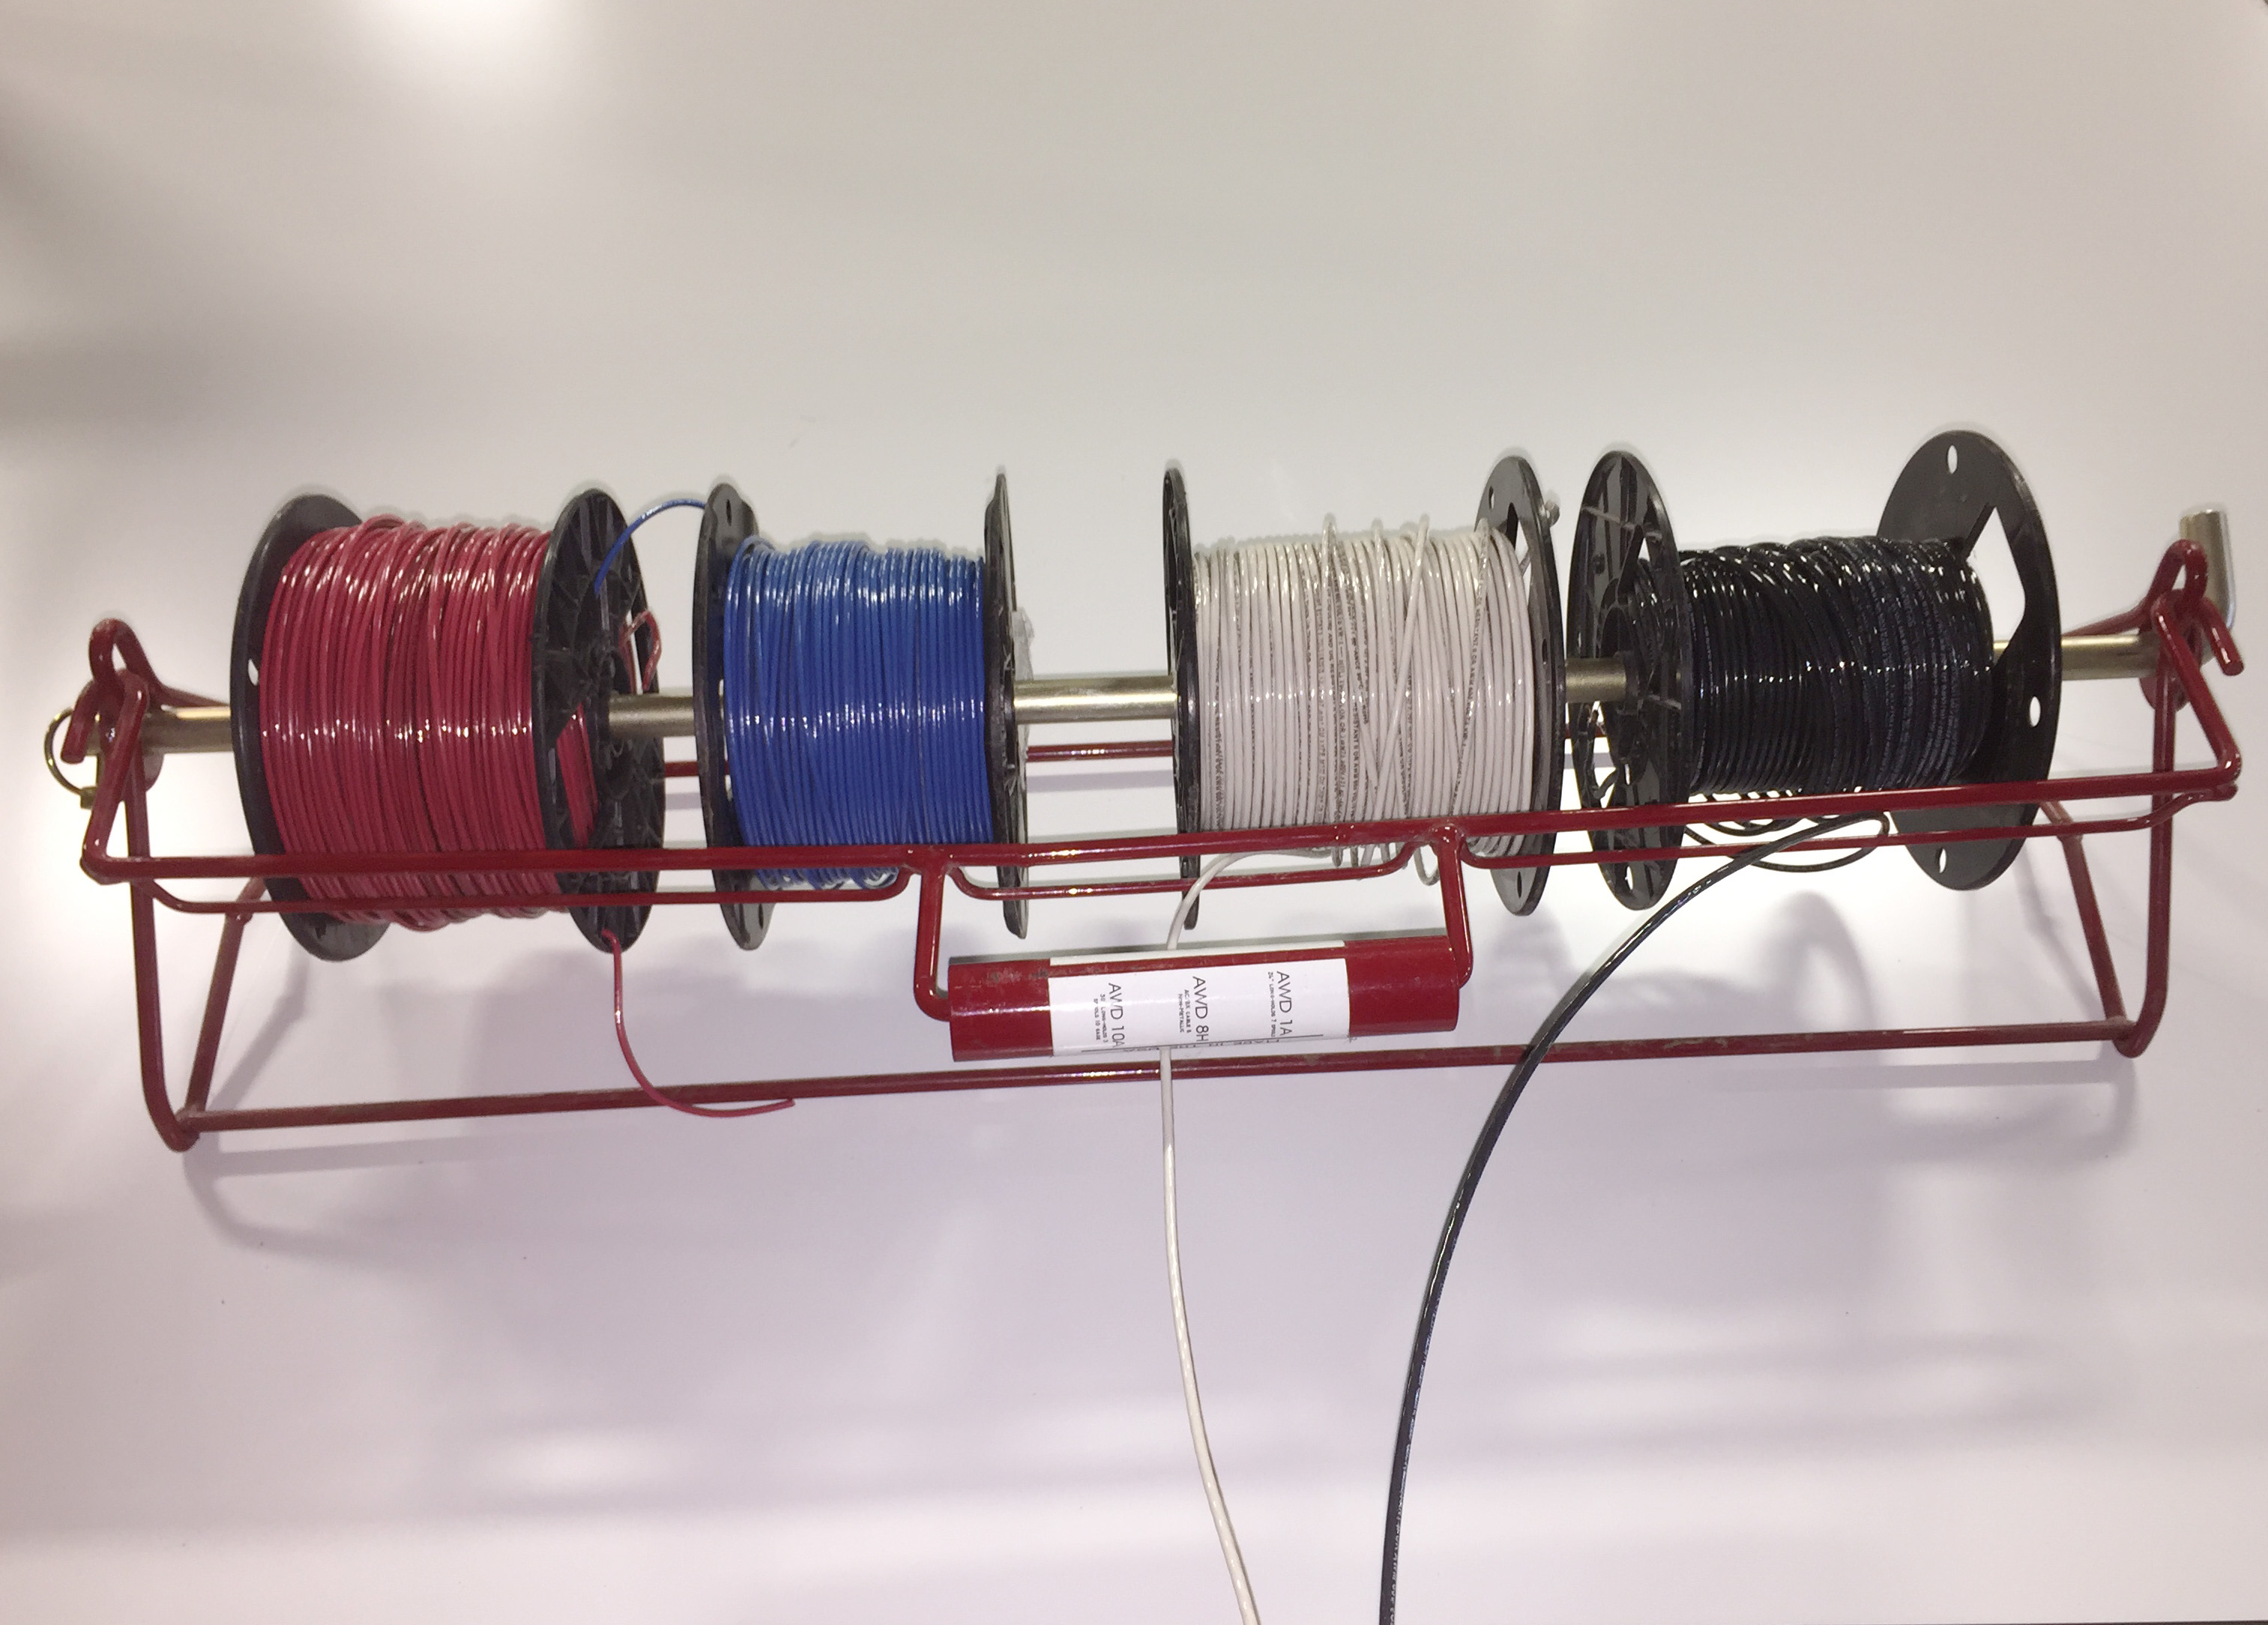 American Wire Kaddy 1a Tomlinson Manufacturing